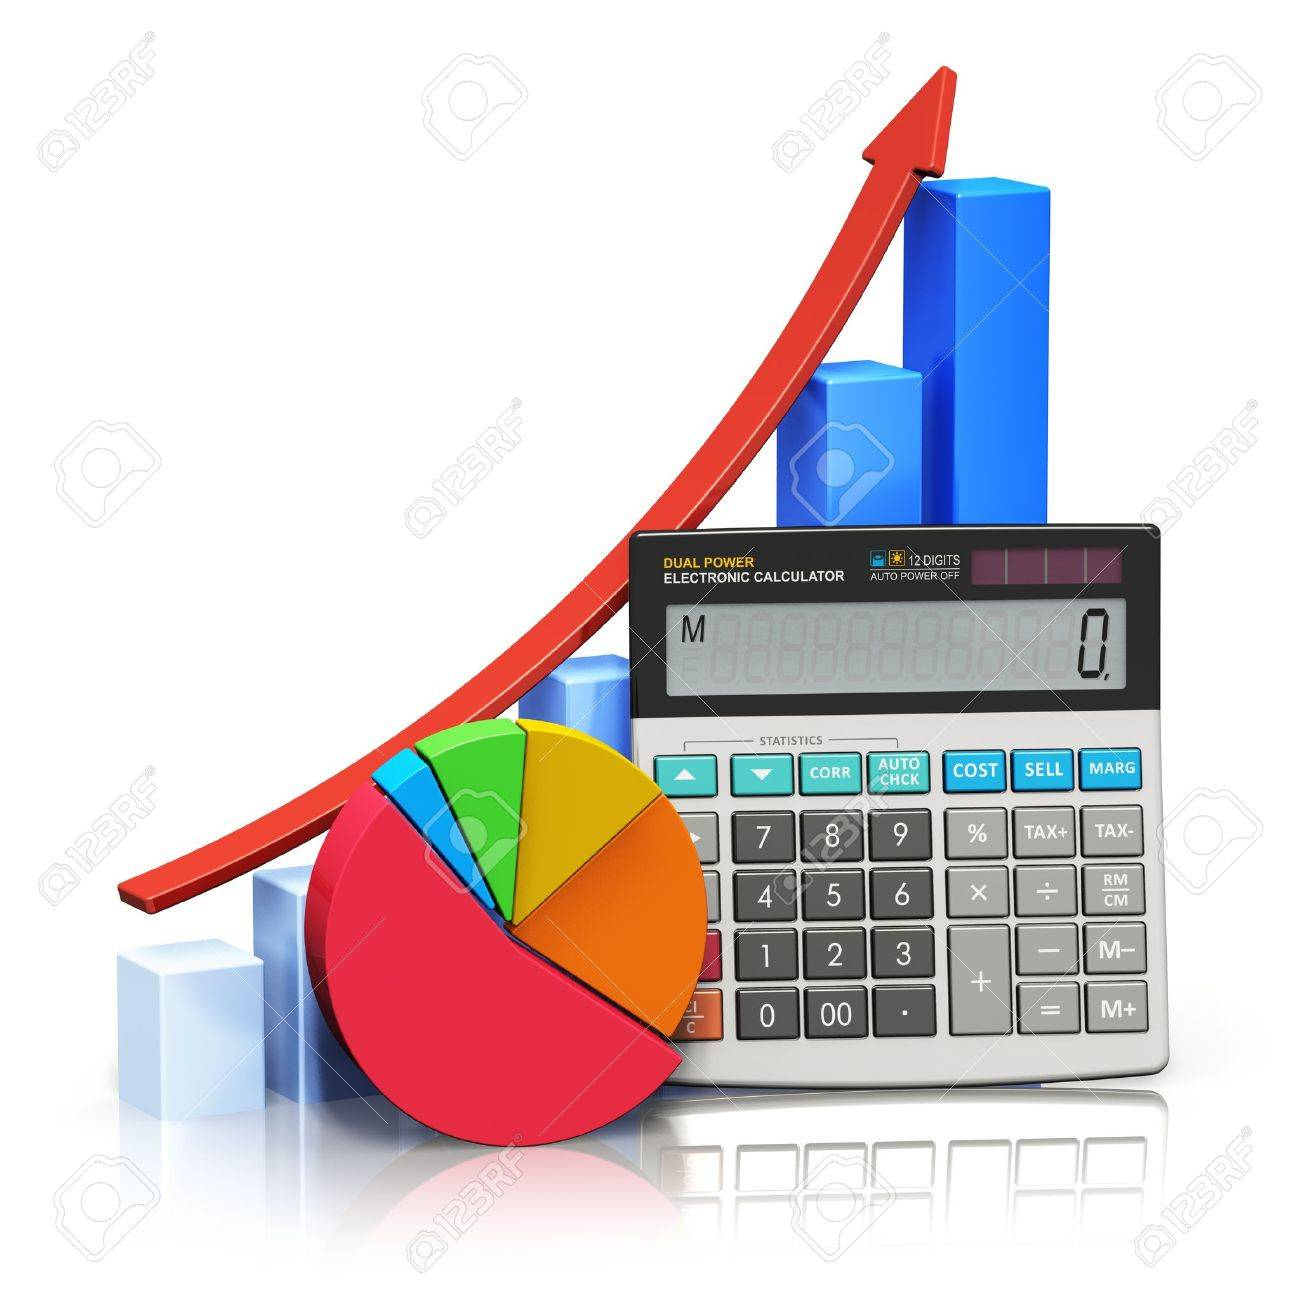 Business financial success tax and accounting statistics and business financial success tax and accounting statistics and analytic research concept office electronic calculator ccuart Image collections